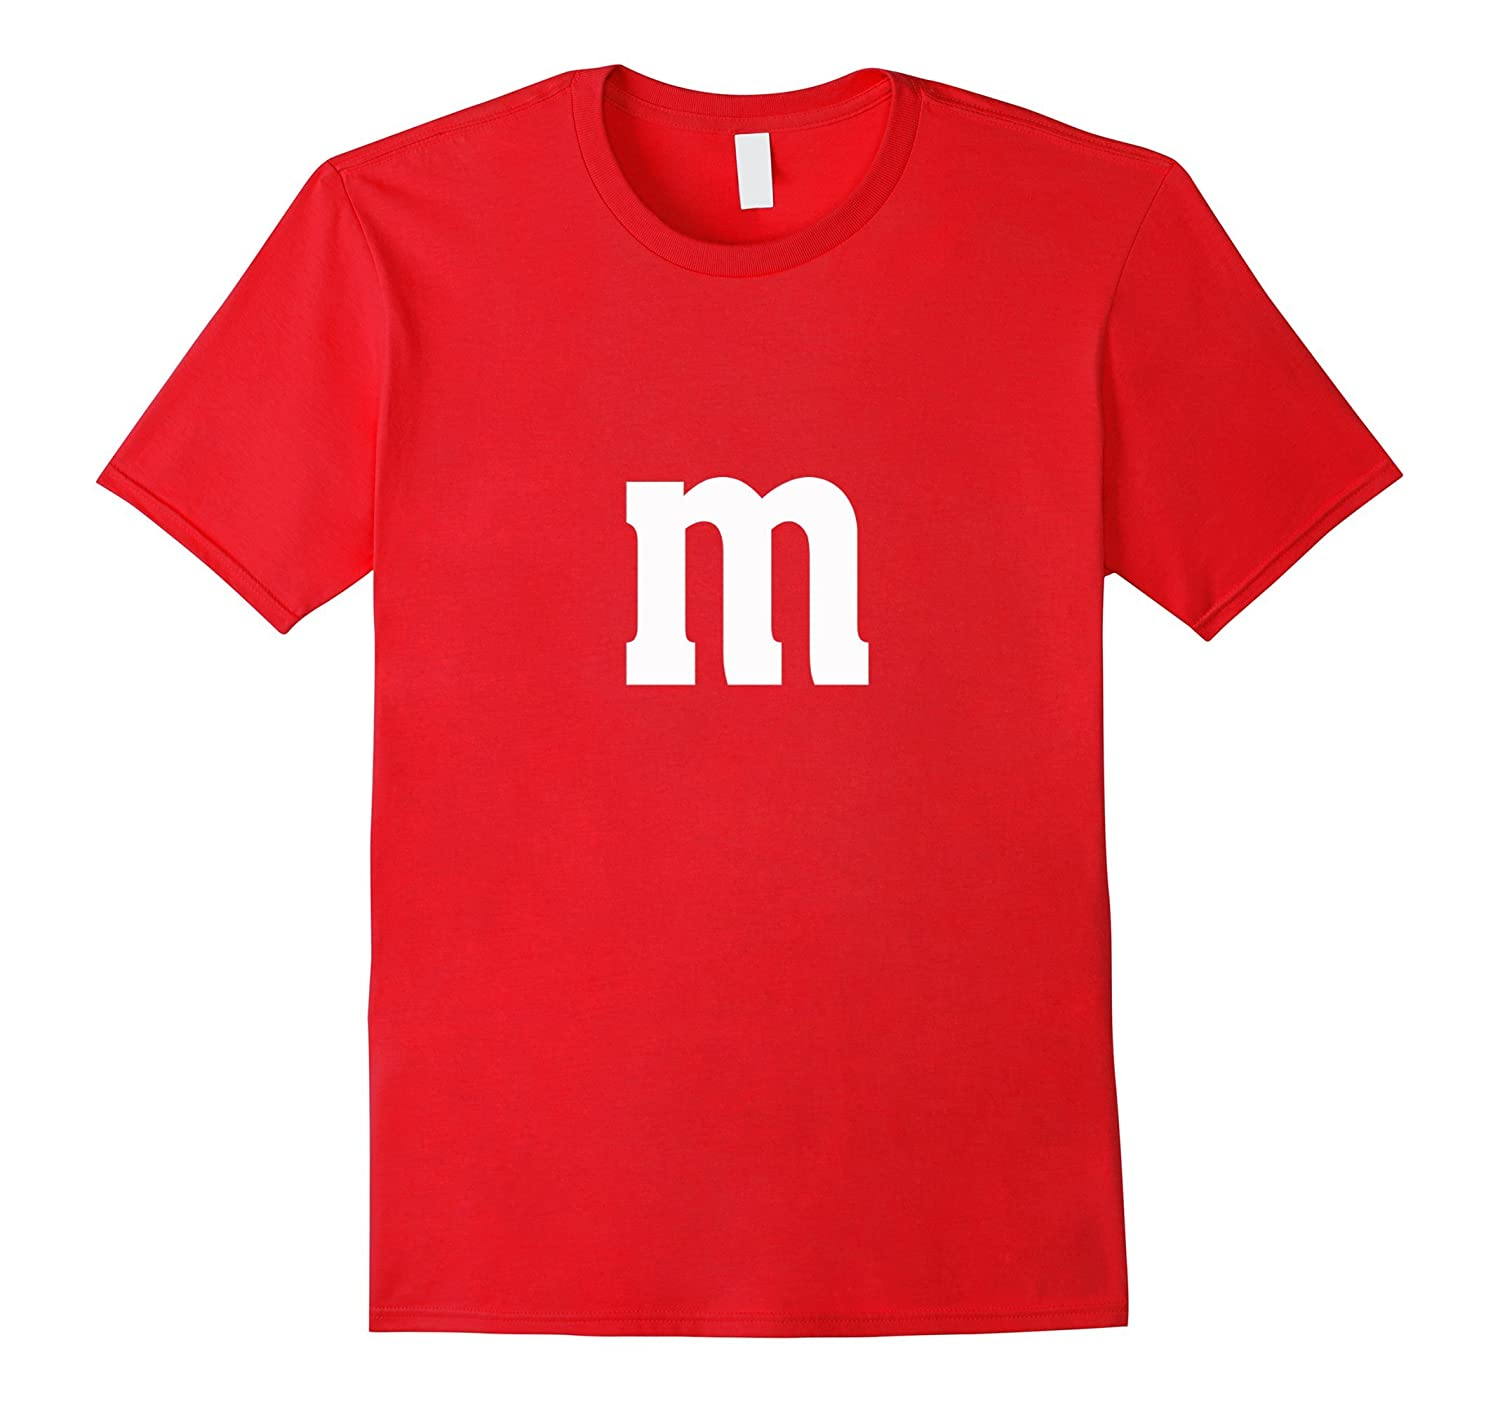 Halloween Group Costume T Shirt Chocolate Candy DIY Letter M-T-Shirt